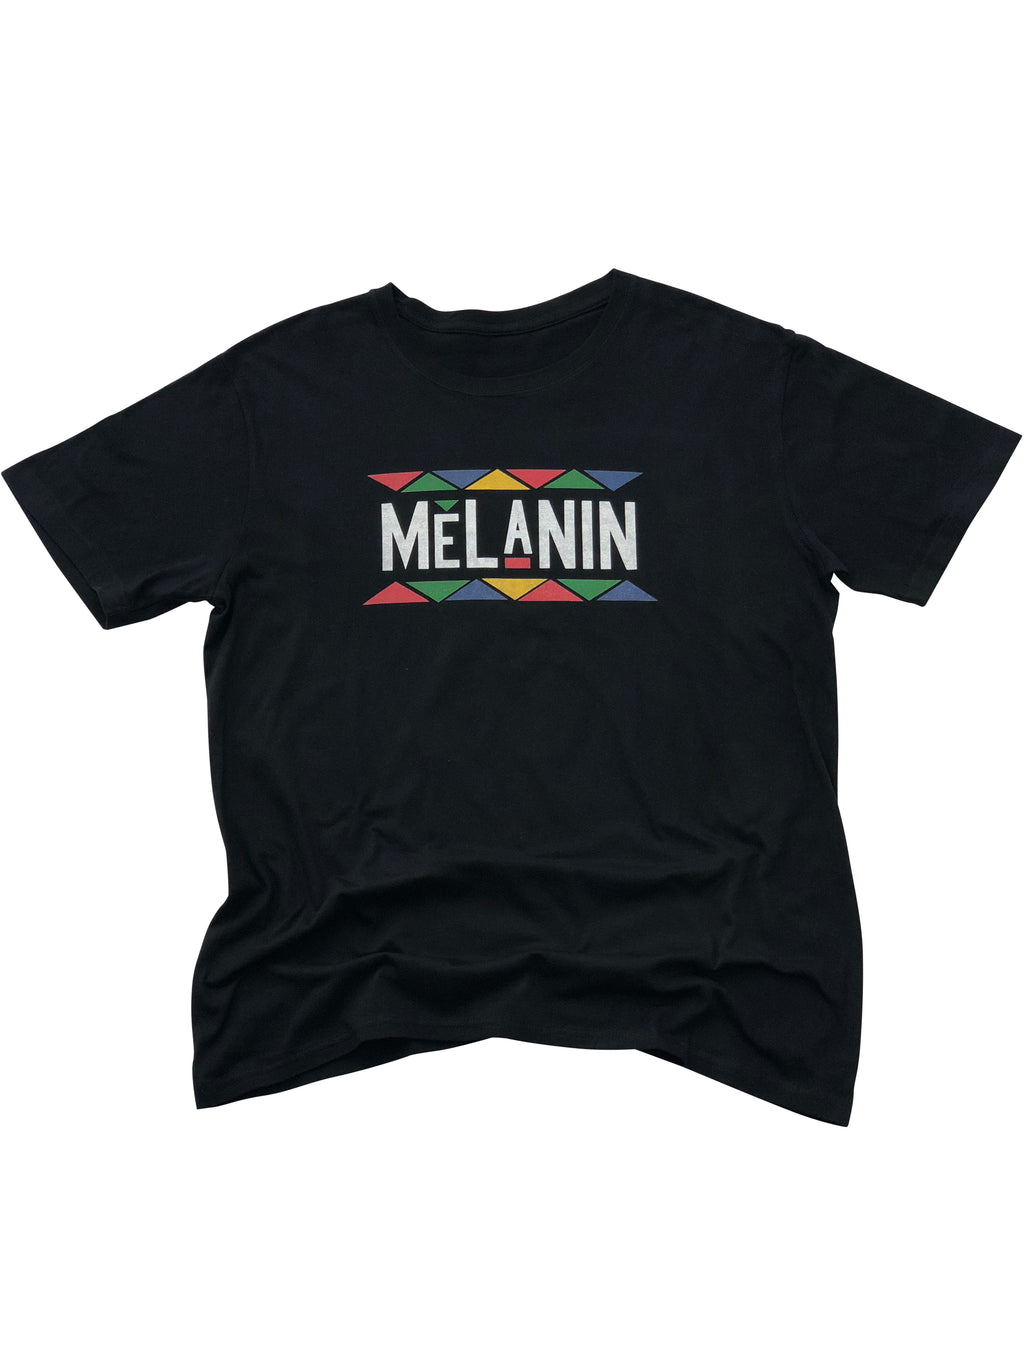 Melanin Shirt in Black - Trunk Series, LLC